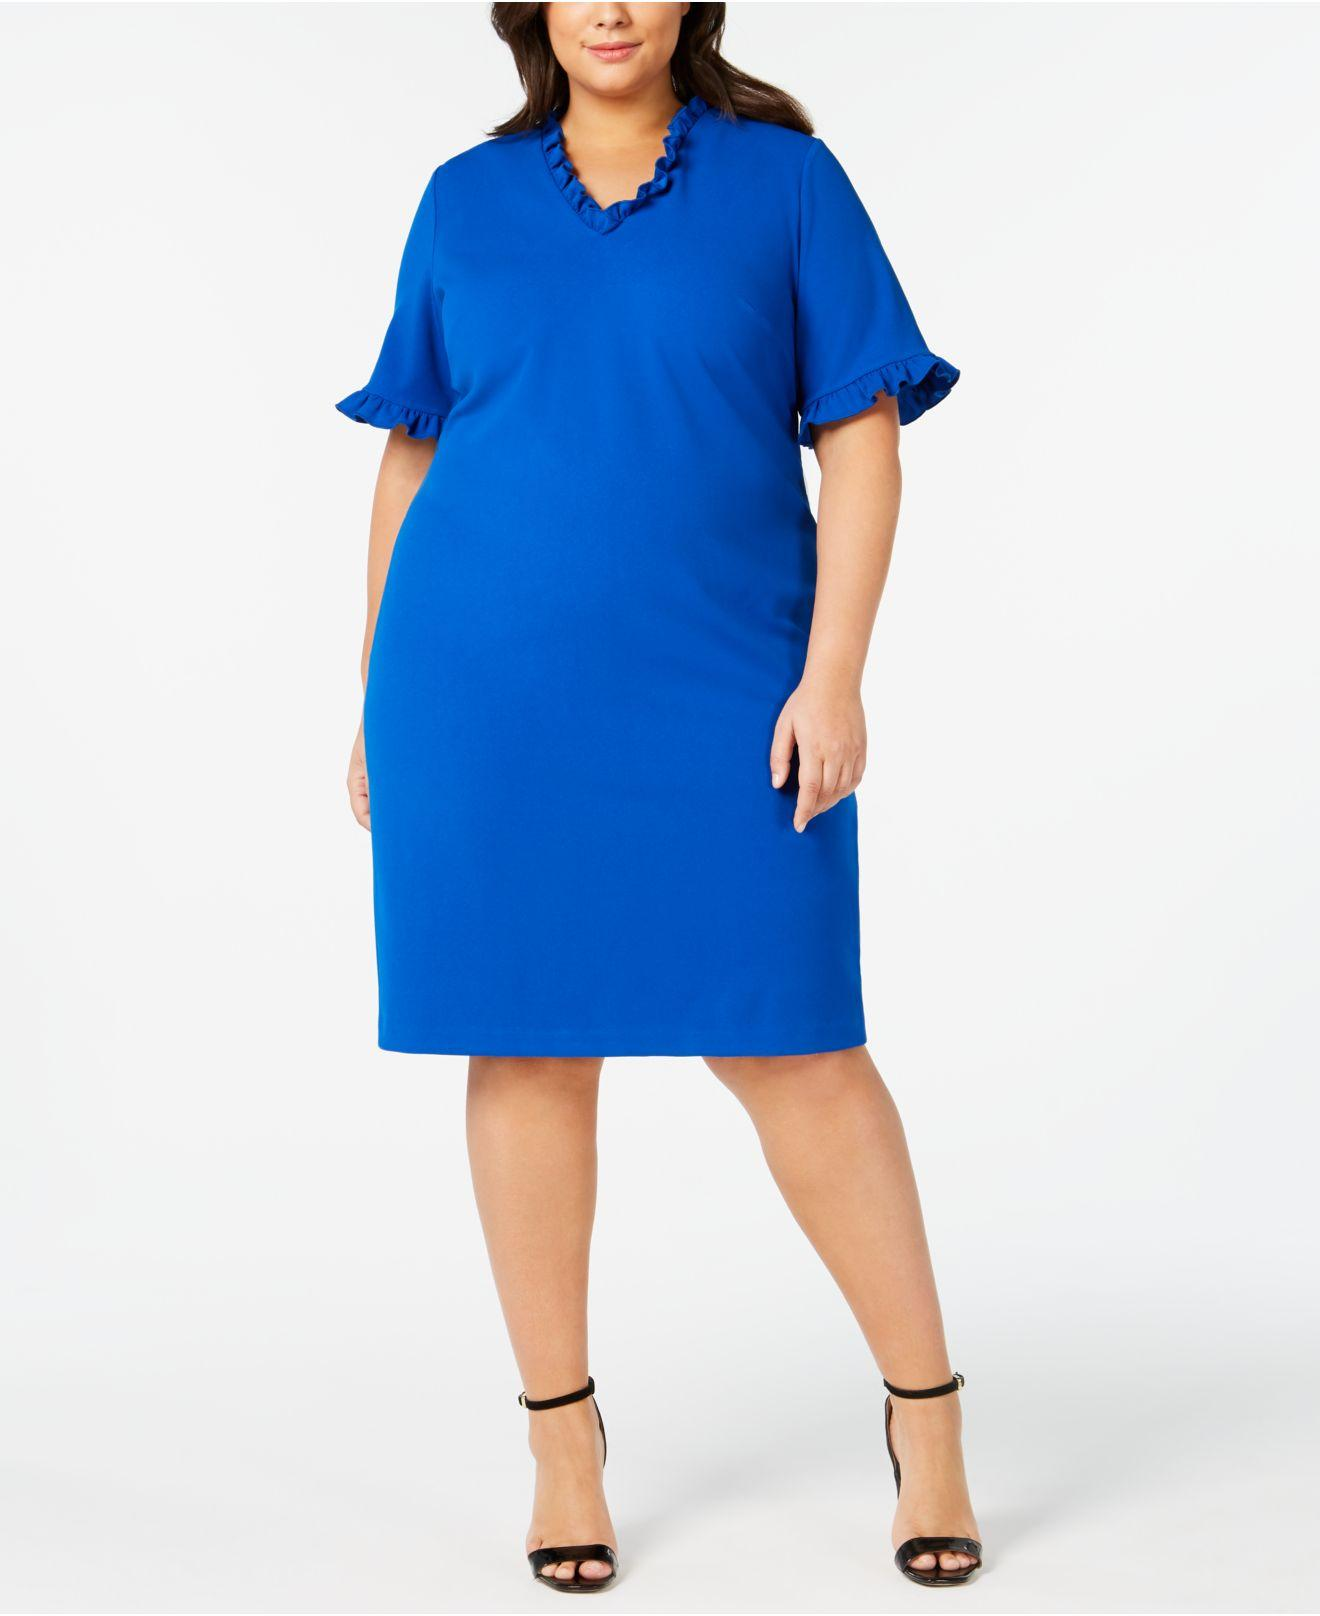 c5dccc59b50 Lyst - Calvin Klein Plus Size Ruffled Sheath Dress in Blue